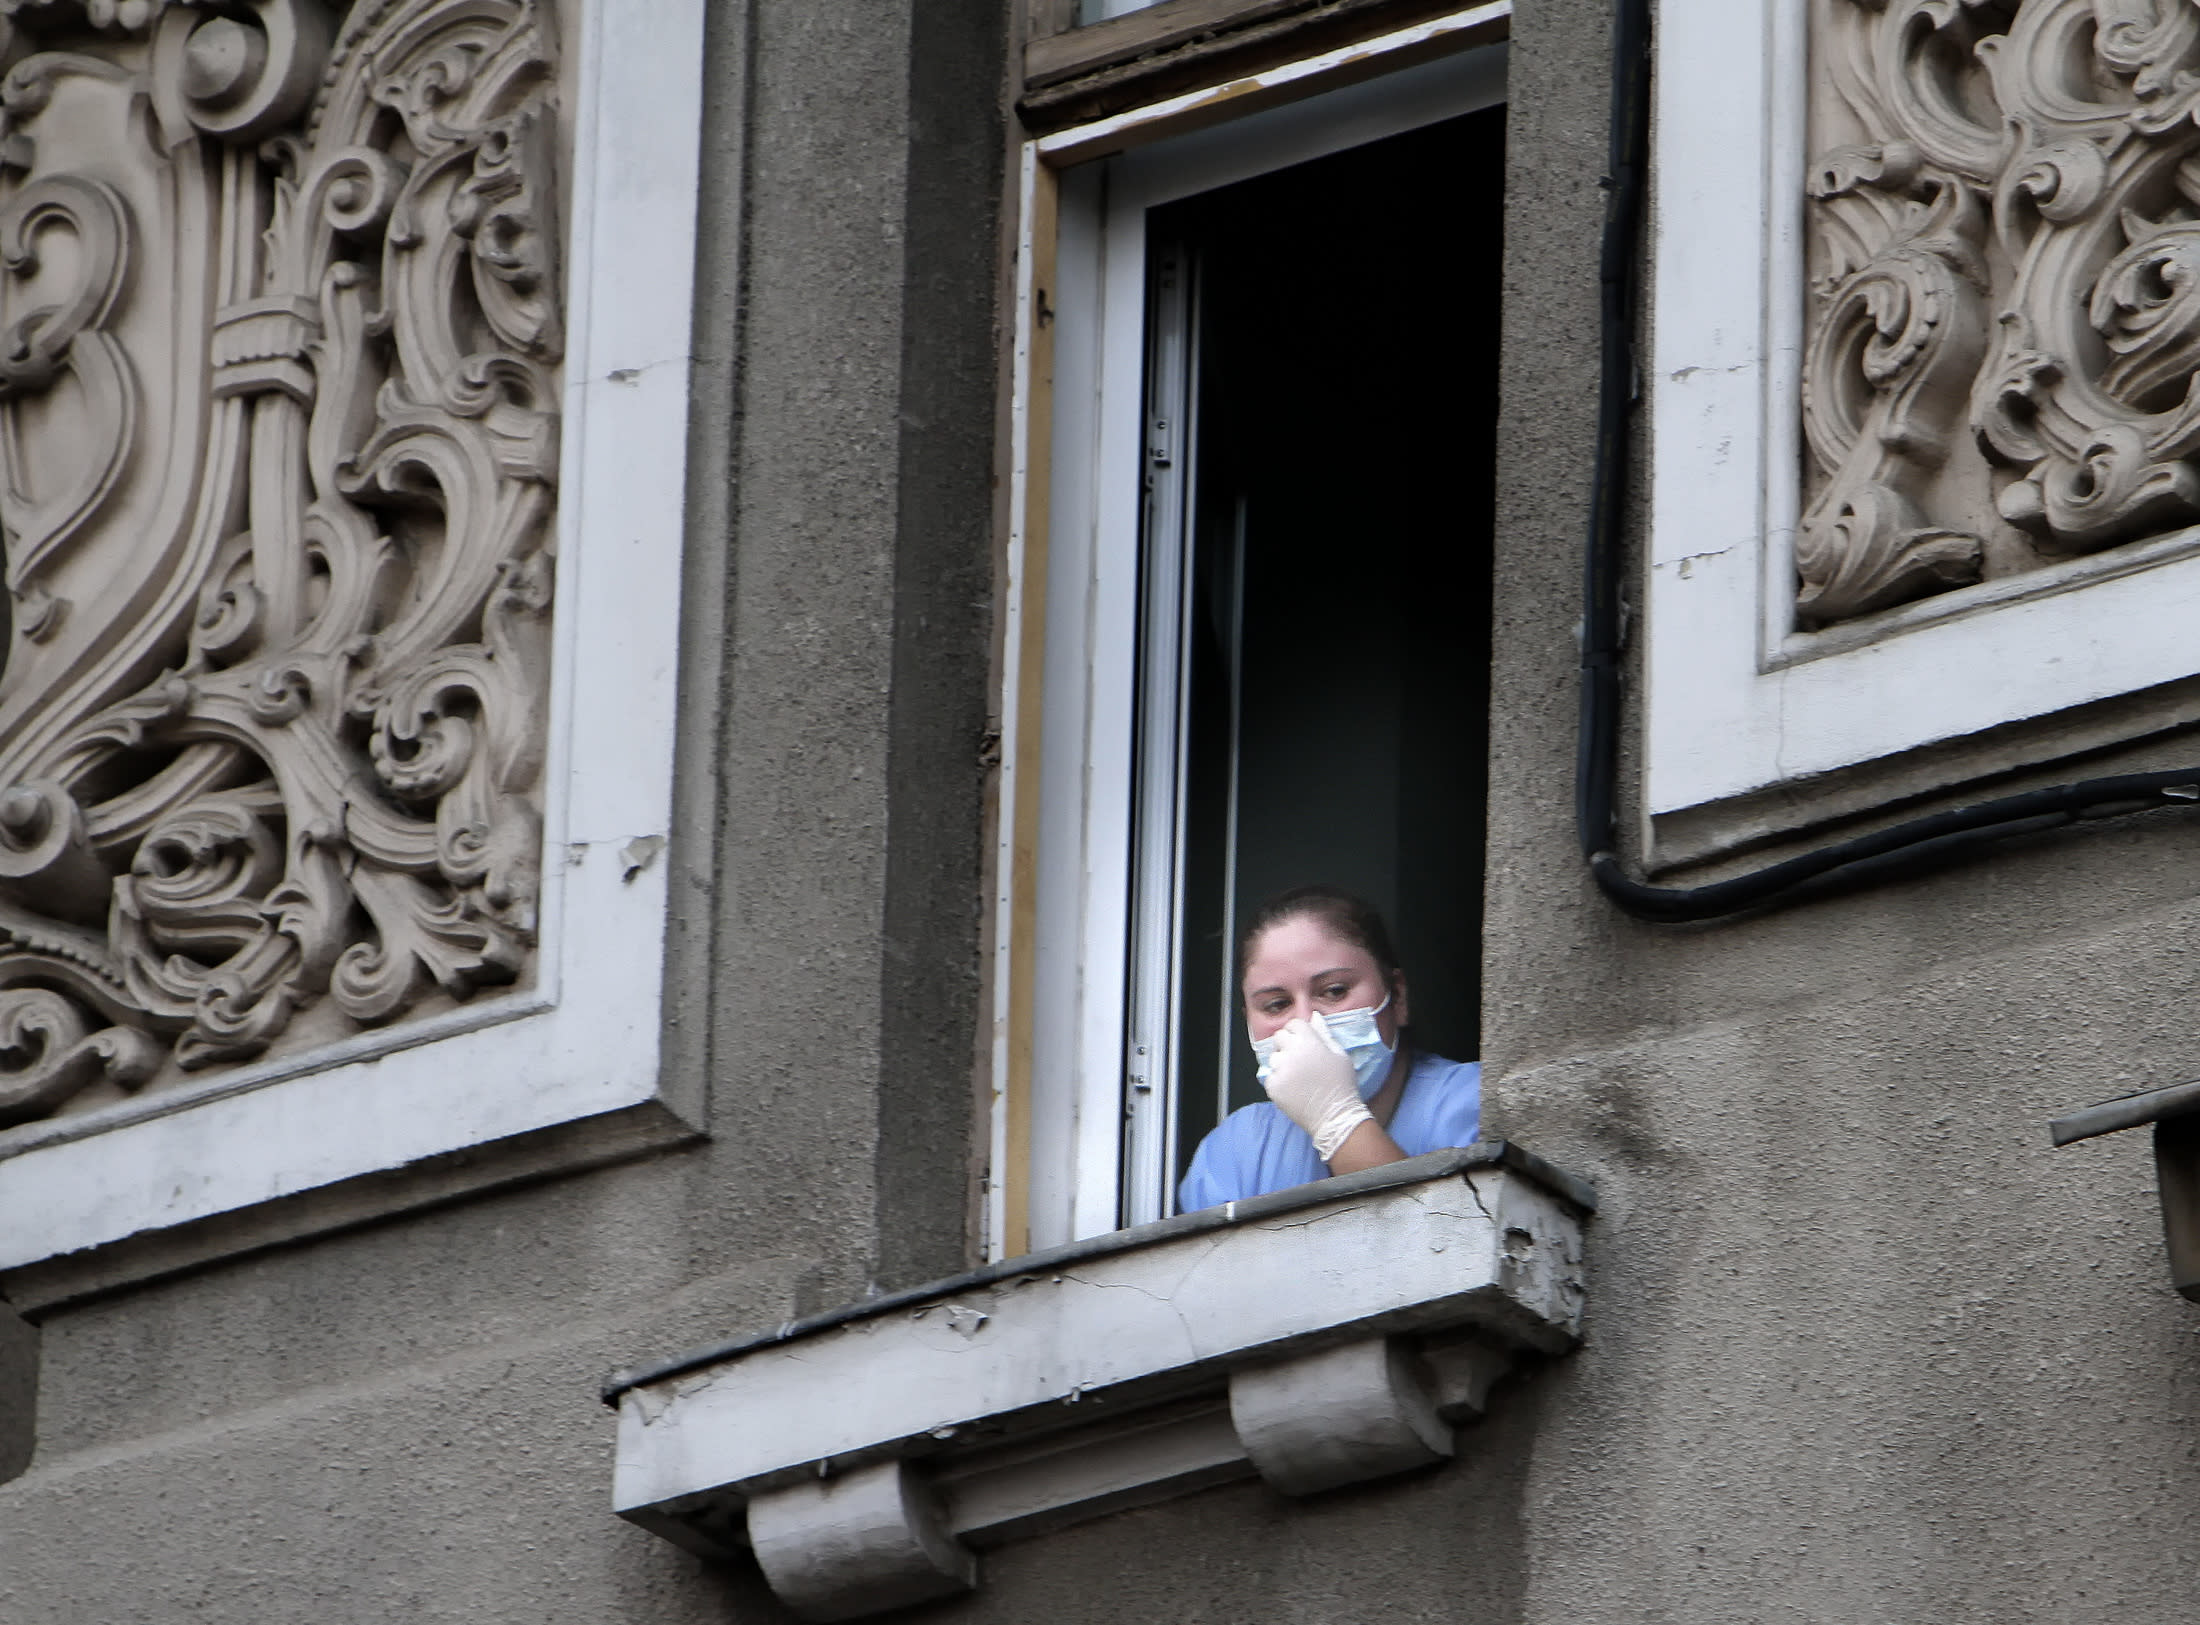 In this Aug. 16, 2010 file photo a nurse looks on from a window of the Giulesti hospital following a fire that left 5 newborn babies dead. Romanian health authorities on Friday, Nov. 30, 2018, temporarily closed the maternity hospital in the capital after over a dozen babies born there recently were diagnosed with a drug-resistant superbug. The Health Ministry said the hospital would stop admissions after the newborns were recently diagnosed with antibiotic-resistant Staphylococcus aureus. (AP Photo/Vadim Ghirda, File)